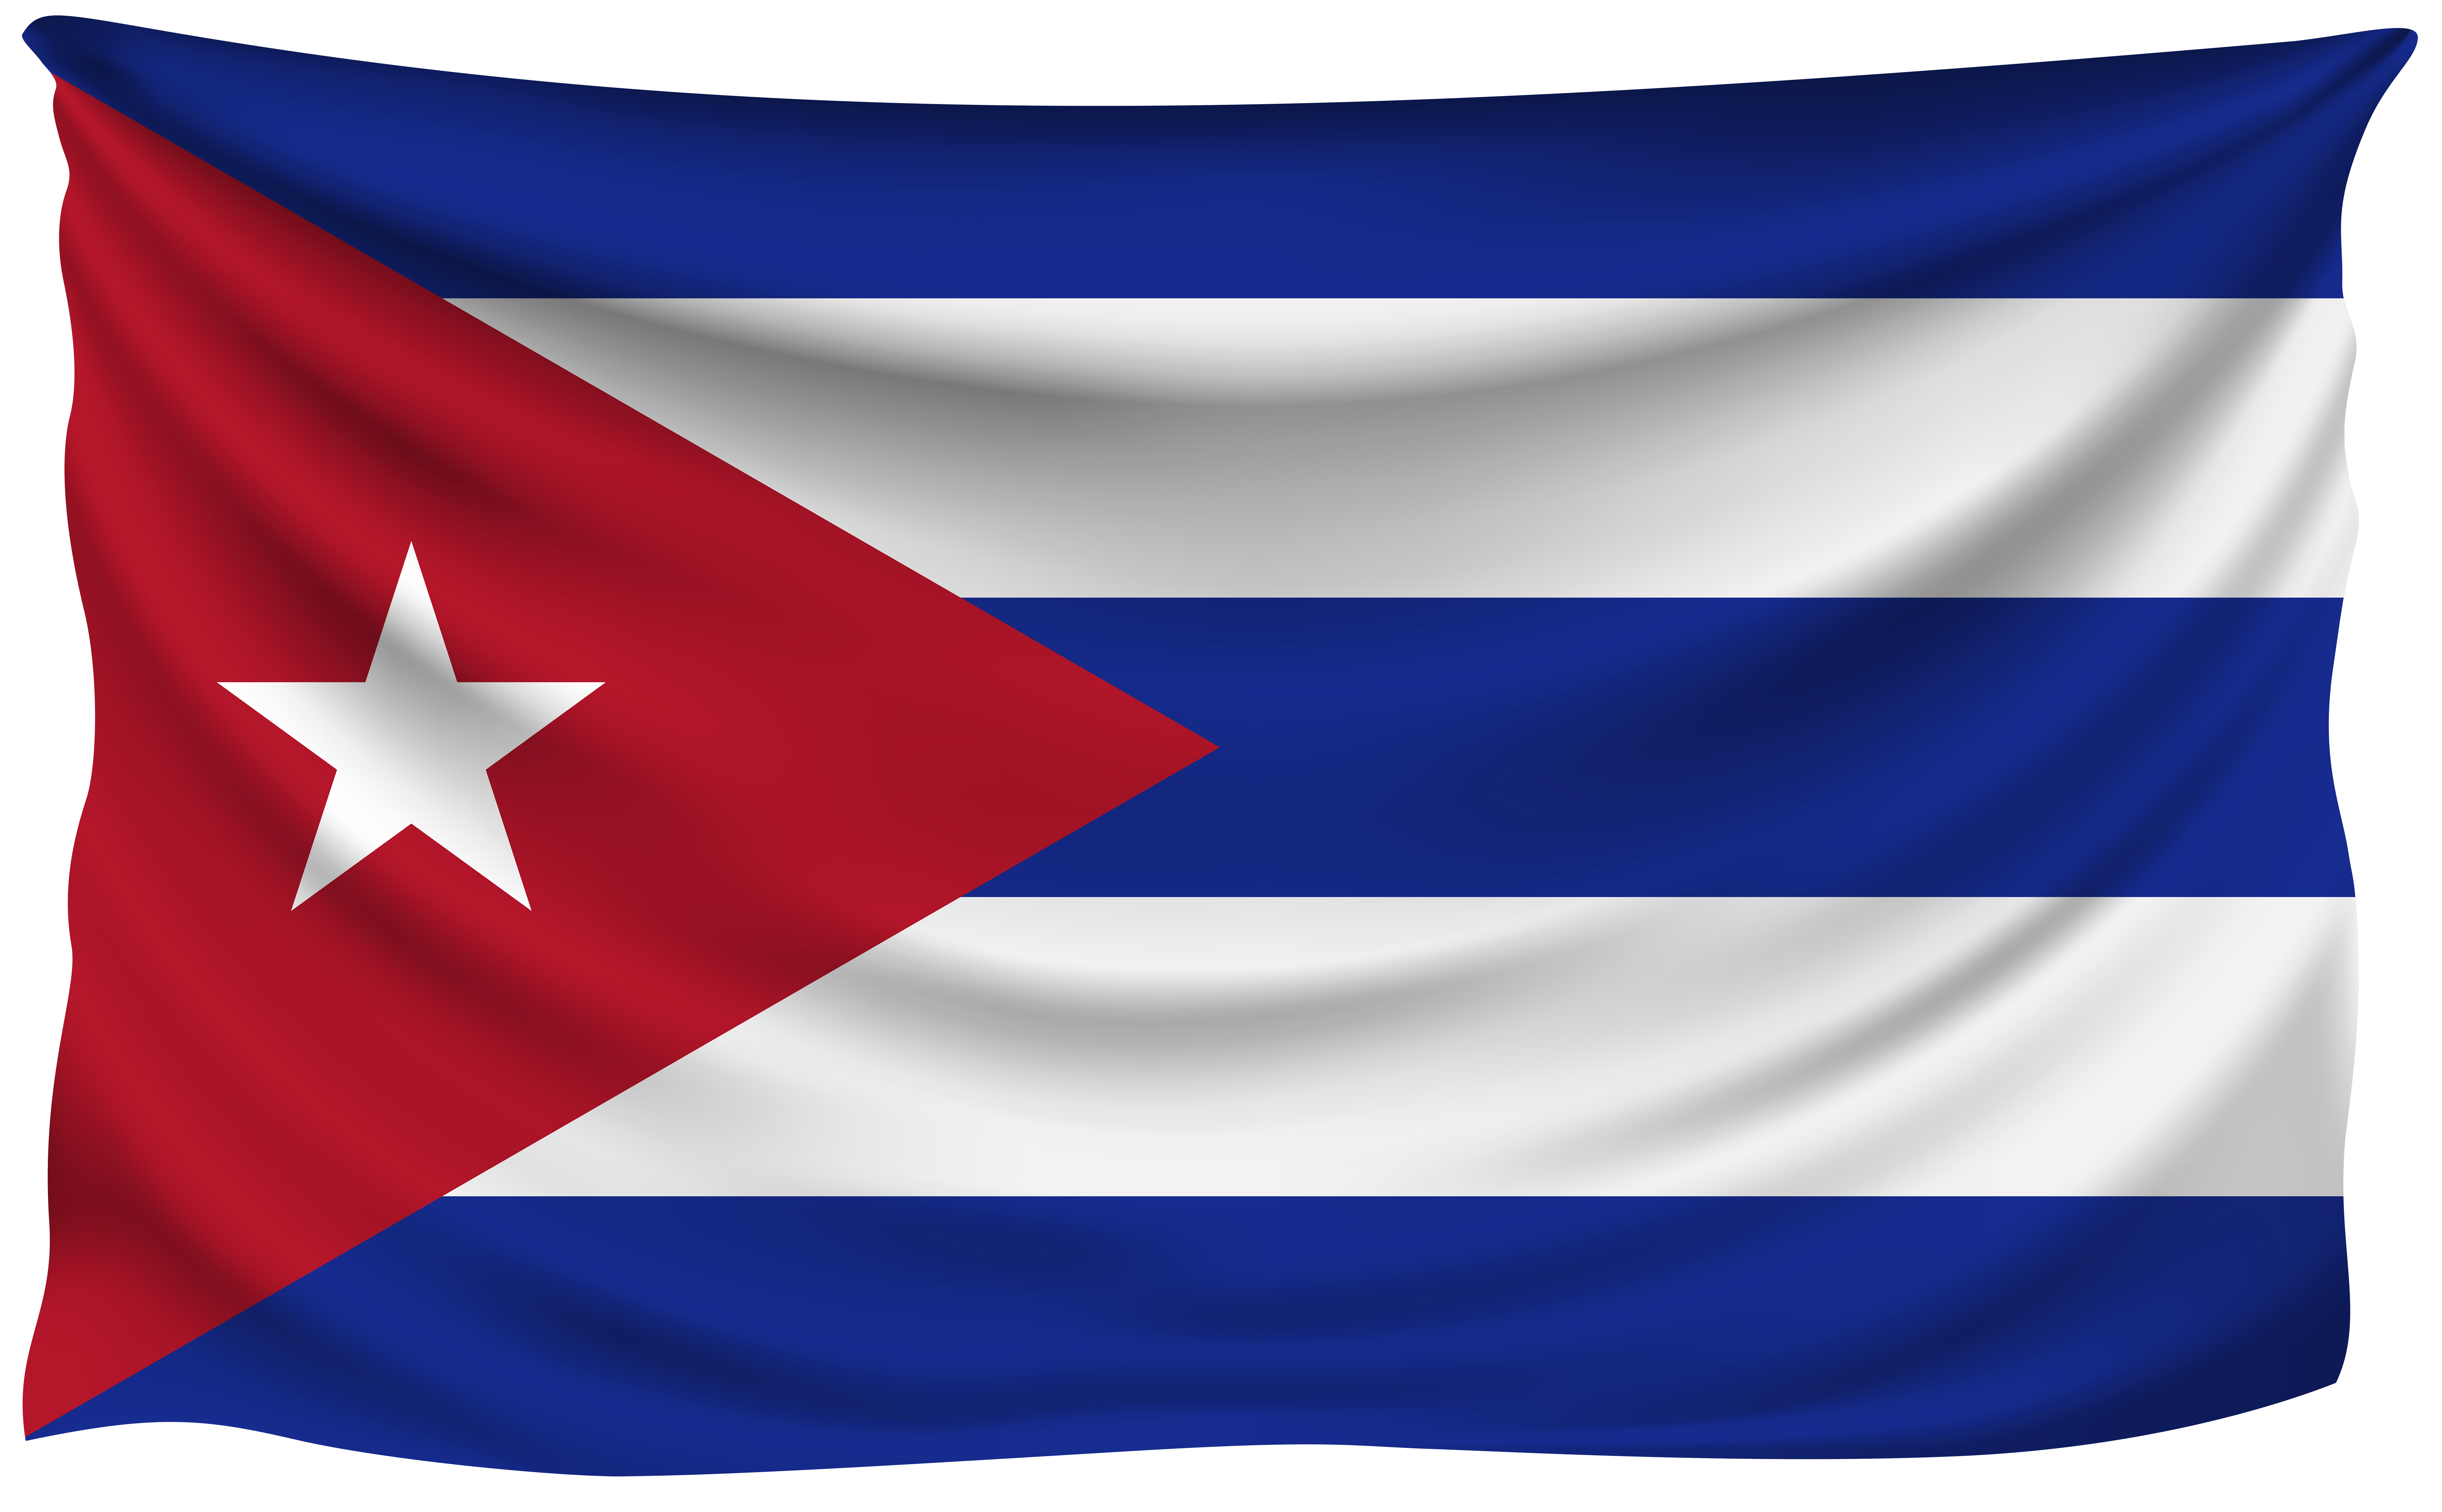 Flag Of Cuba Png - Cuba Wrinkled Flag | Gallery Yopriceville - High-Quality Images ...